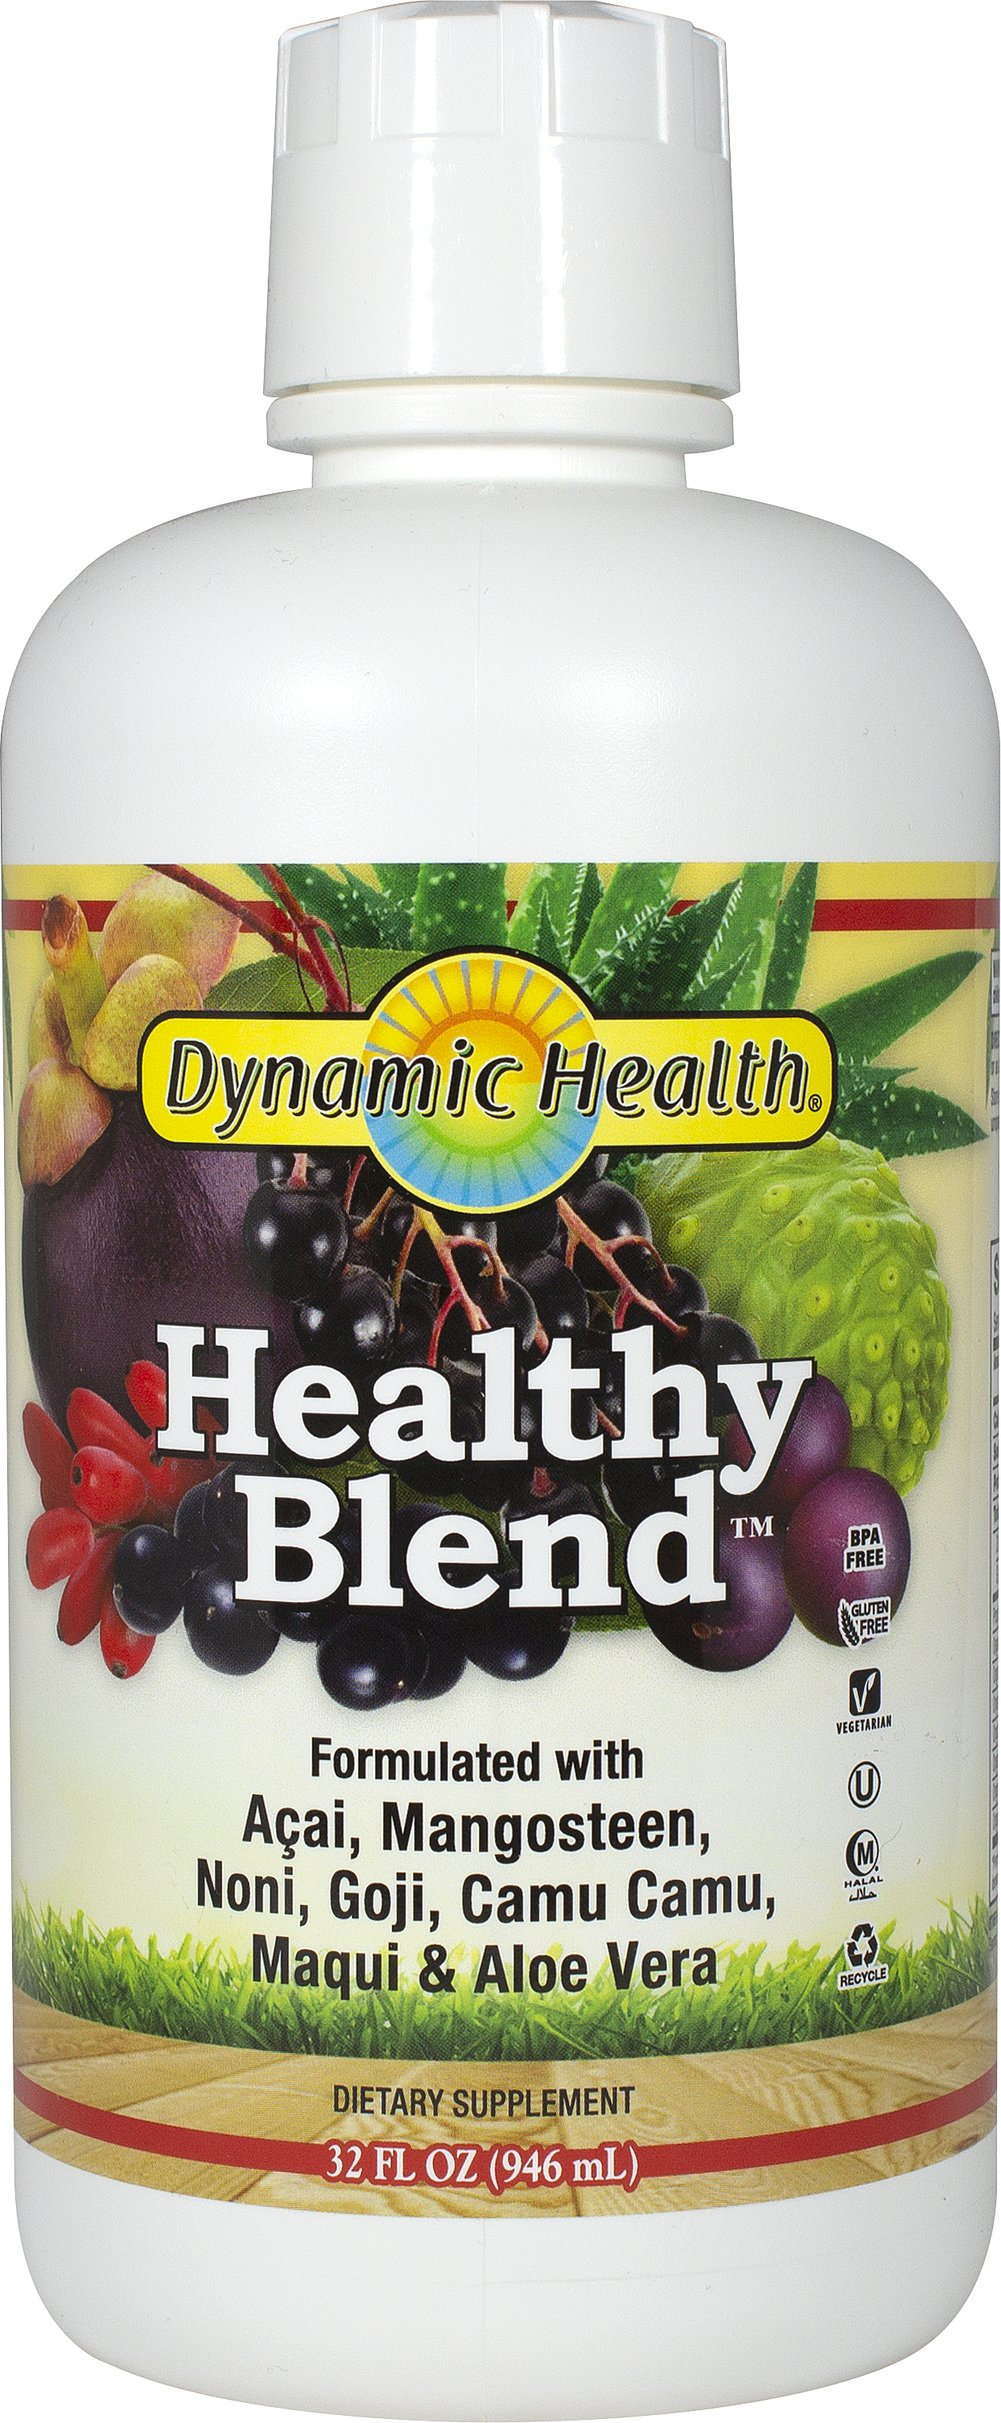 Healthy Blend Superfruit Juice with Camu Camu <p><strong>From the Manufacturer's Label: </strong></p><p>Goji, Mangosteen, Aloe Vera, Acai, Noni, Camu.</p><p>The synergy of these beneficial juice concentrates results in a delicious and nutritious cocktail that is rich in the following: Essential Vitamins ( B-1, B-2, B-3, E and C), Essential Minerals ( Calcium, Potassium, Magnesium, & Phosphorus), Essential Fatty Acids ( Omega-3, Omega-6, Omega